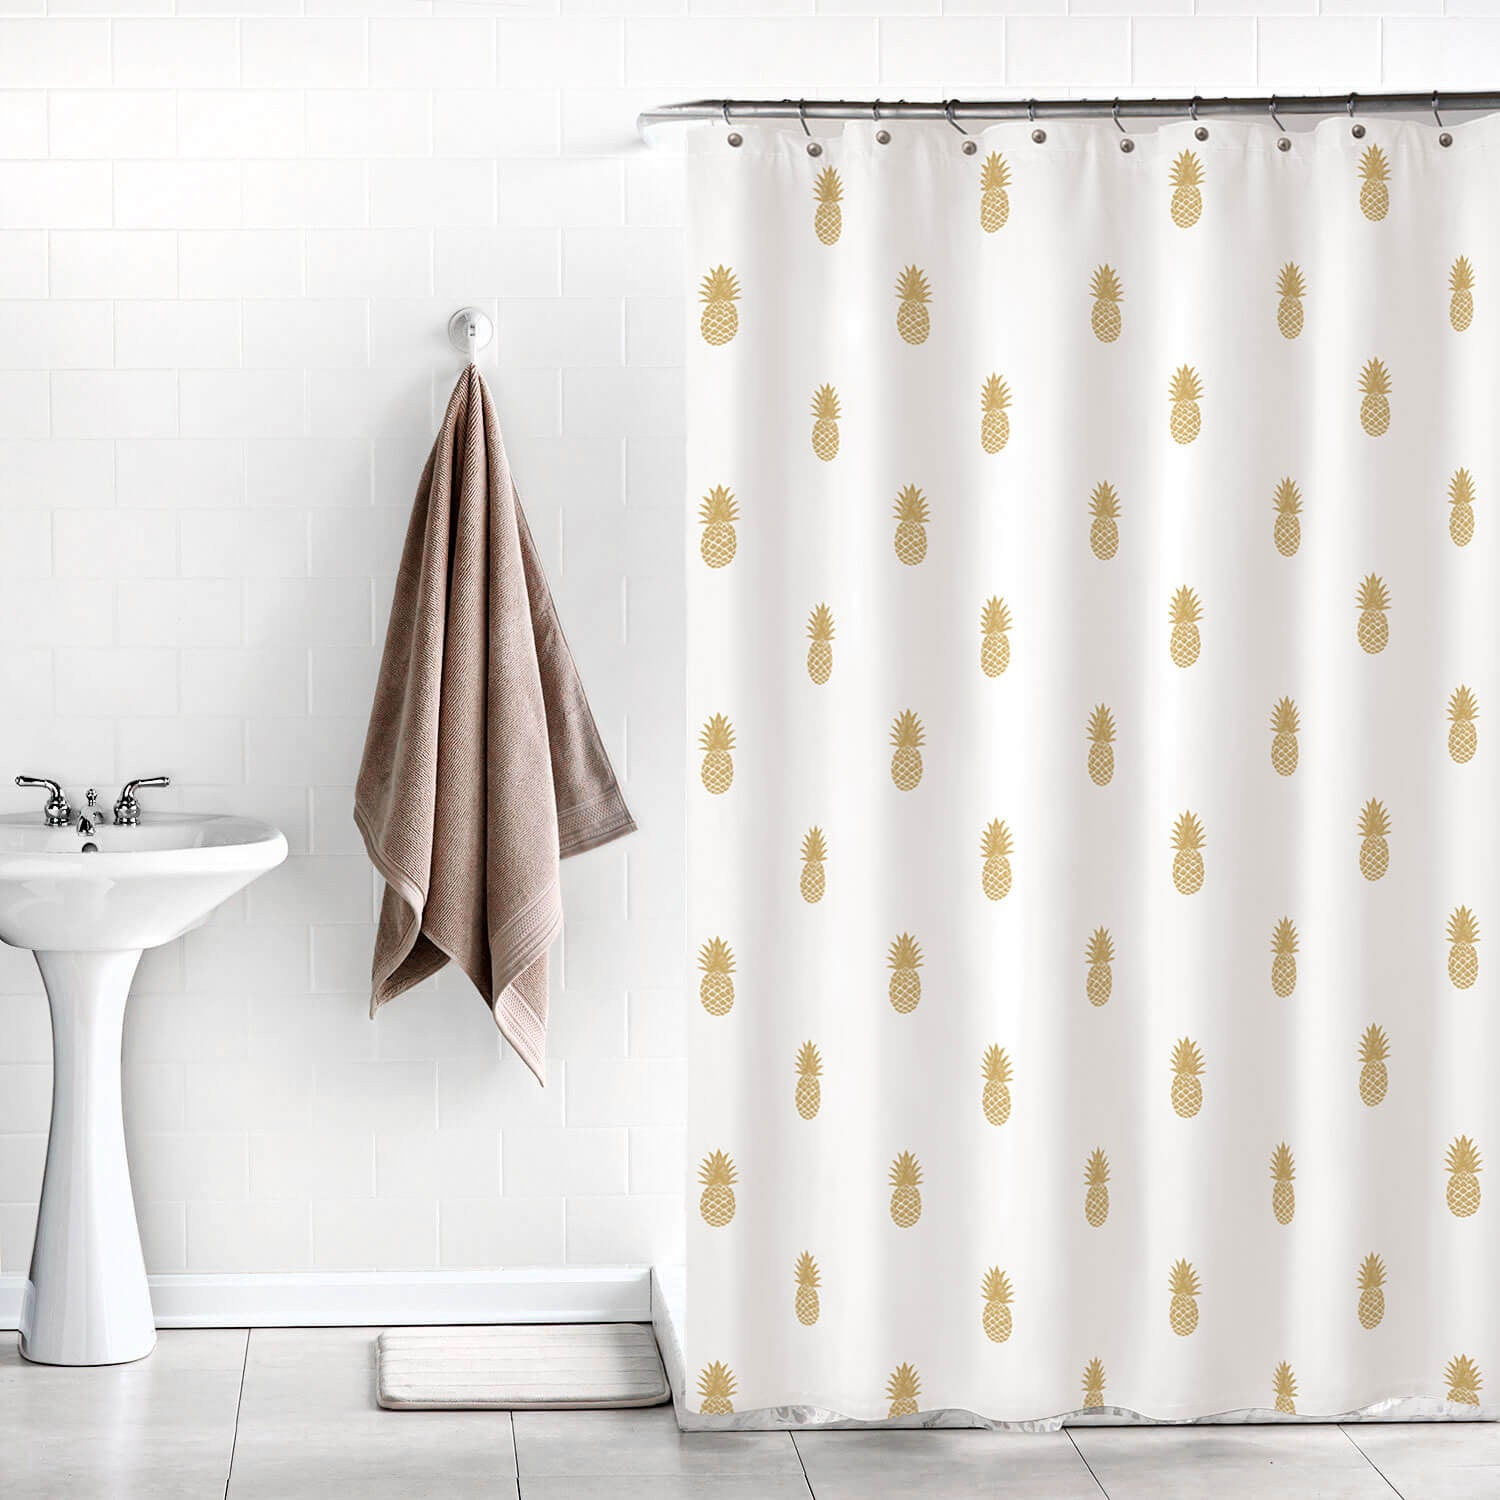 Golden Pineapple Shower Curtain Dormify